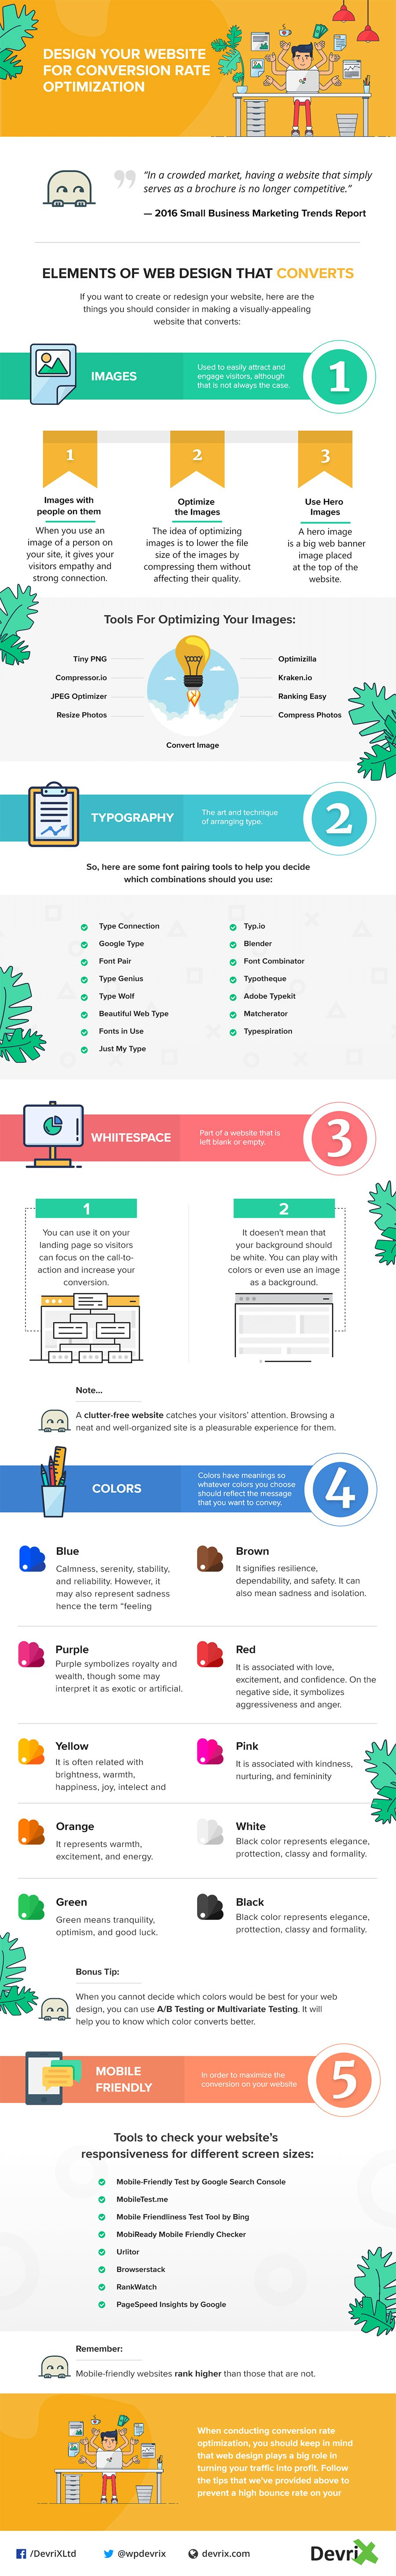 5 Website Elements You Must Optimise to Increase Your Conversion Rate [Infographic] | Social Media Today